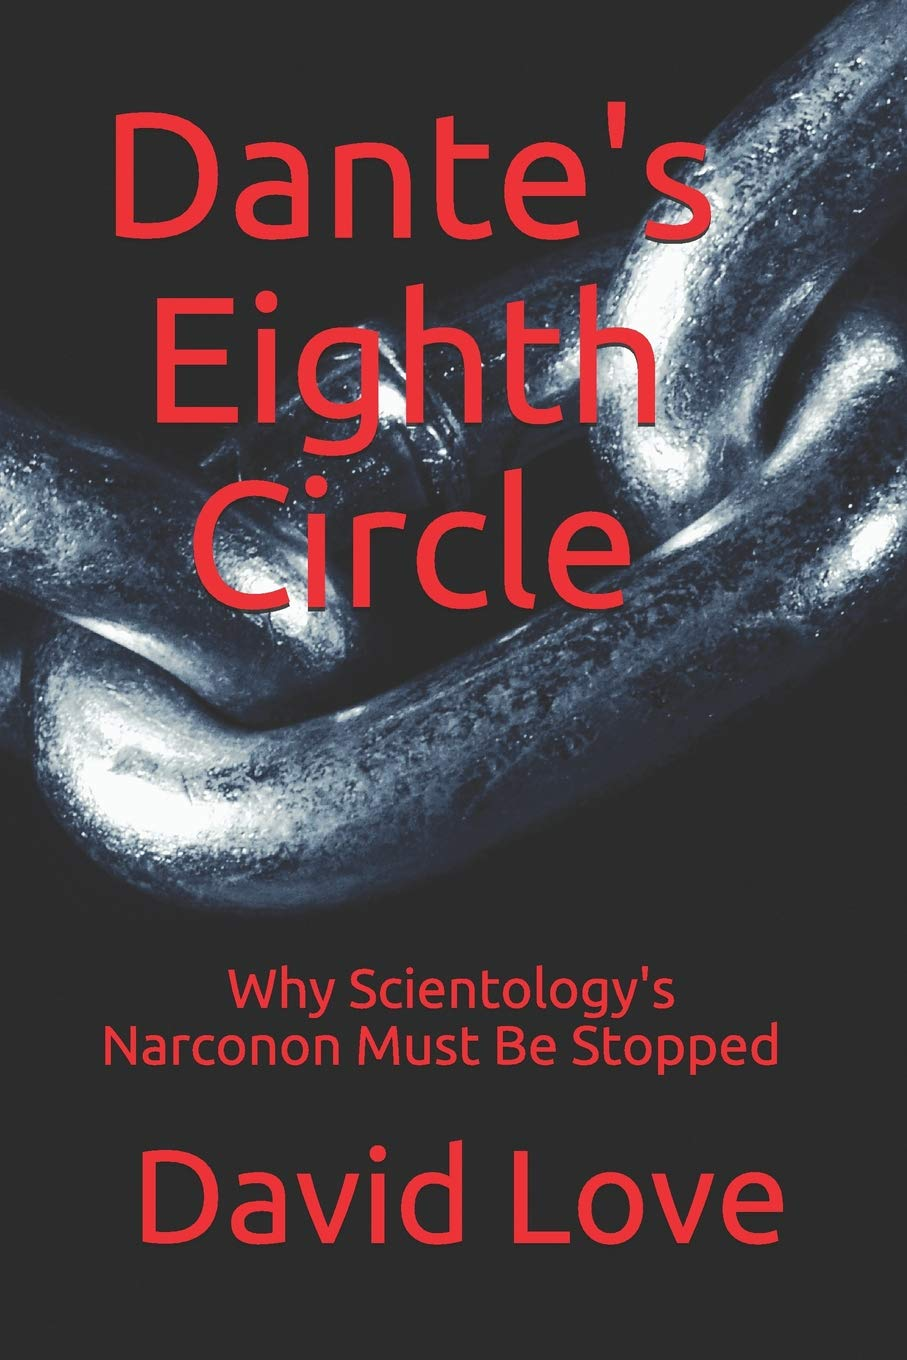 Dantes Eighth Circle: Why Scientologys Narconon Must Be ...